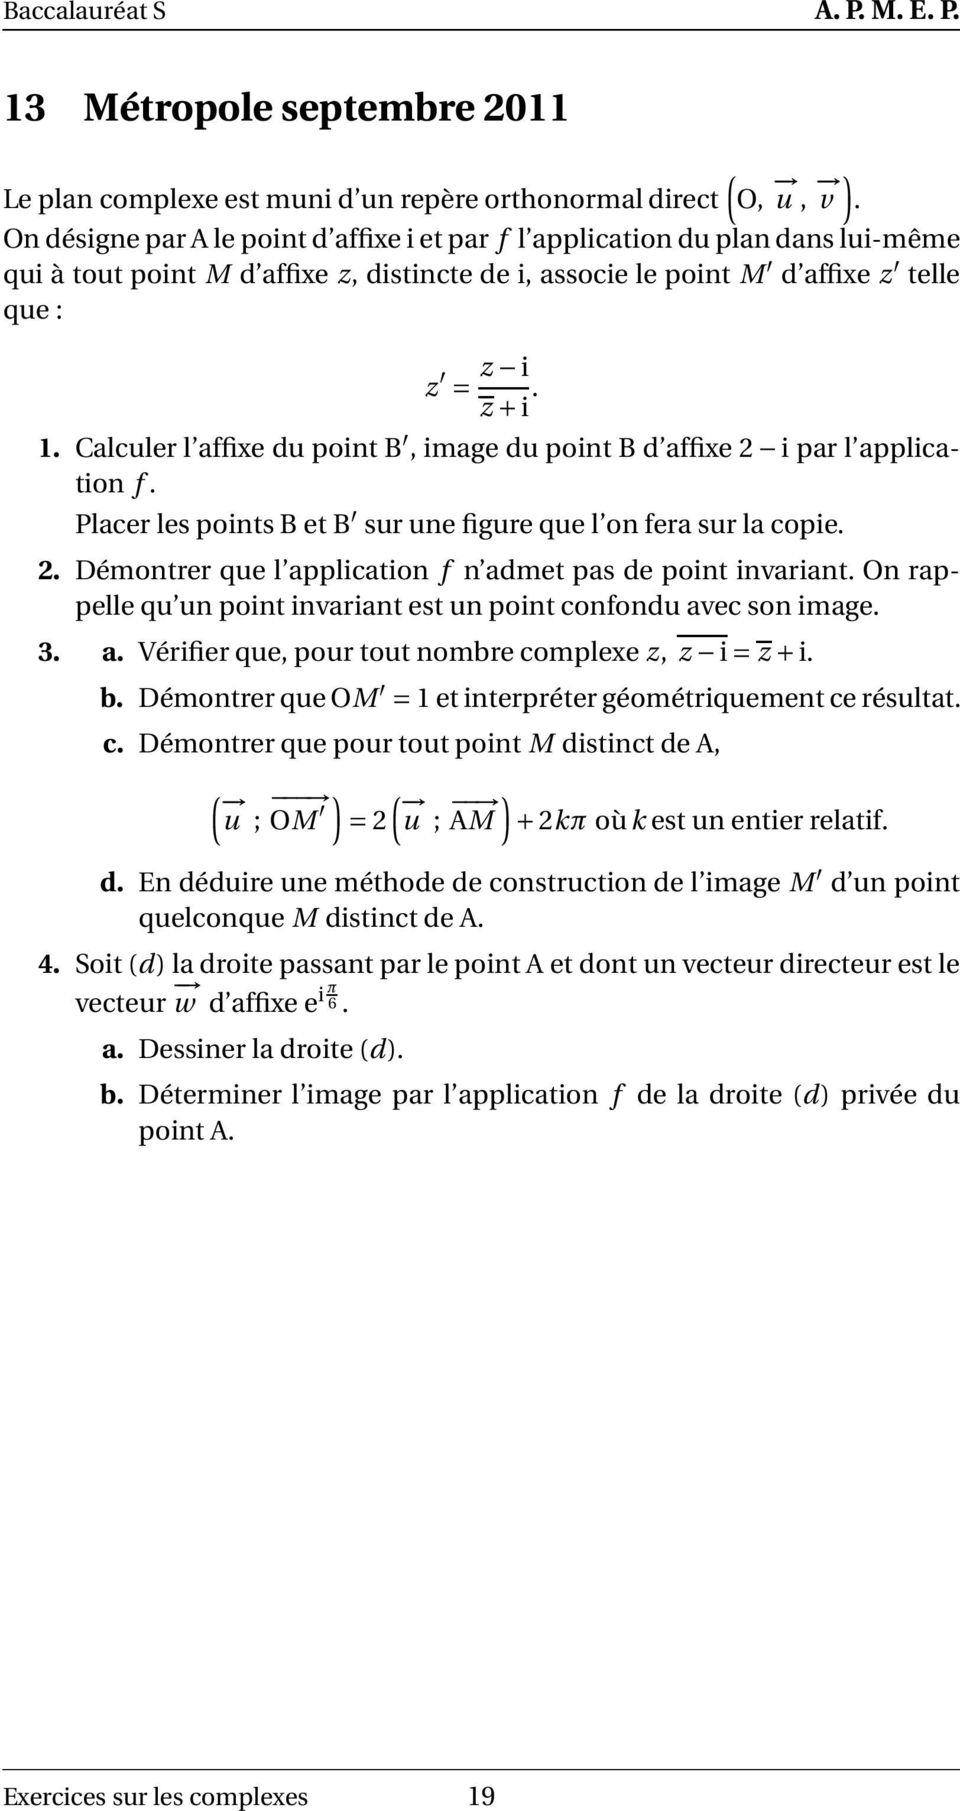 Calculer l affixe du point B, image du point B d affixe 2 i par l application f. Placer les points B et B sur une figure que l on fera sur la copie. 2. Démontrer que l application f n admet pas de point invariant.